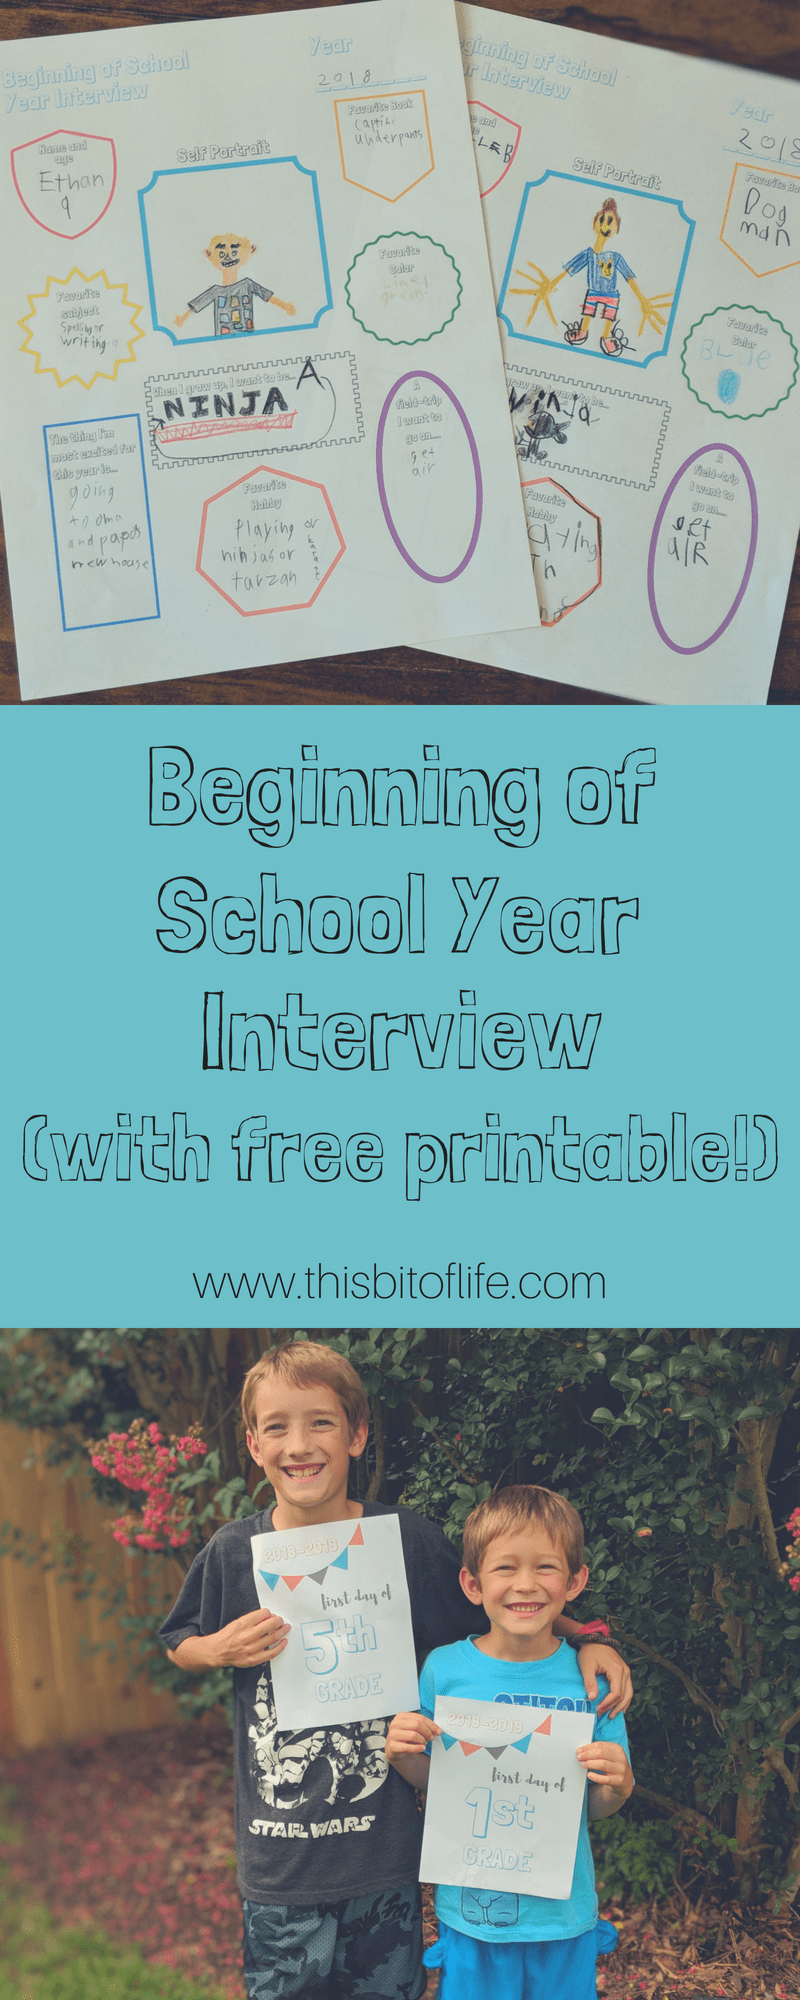 Beginning of School Year Interview - This Bit of Life